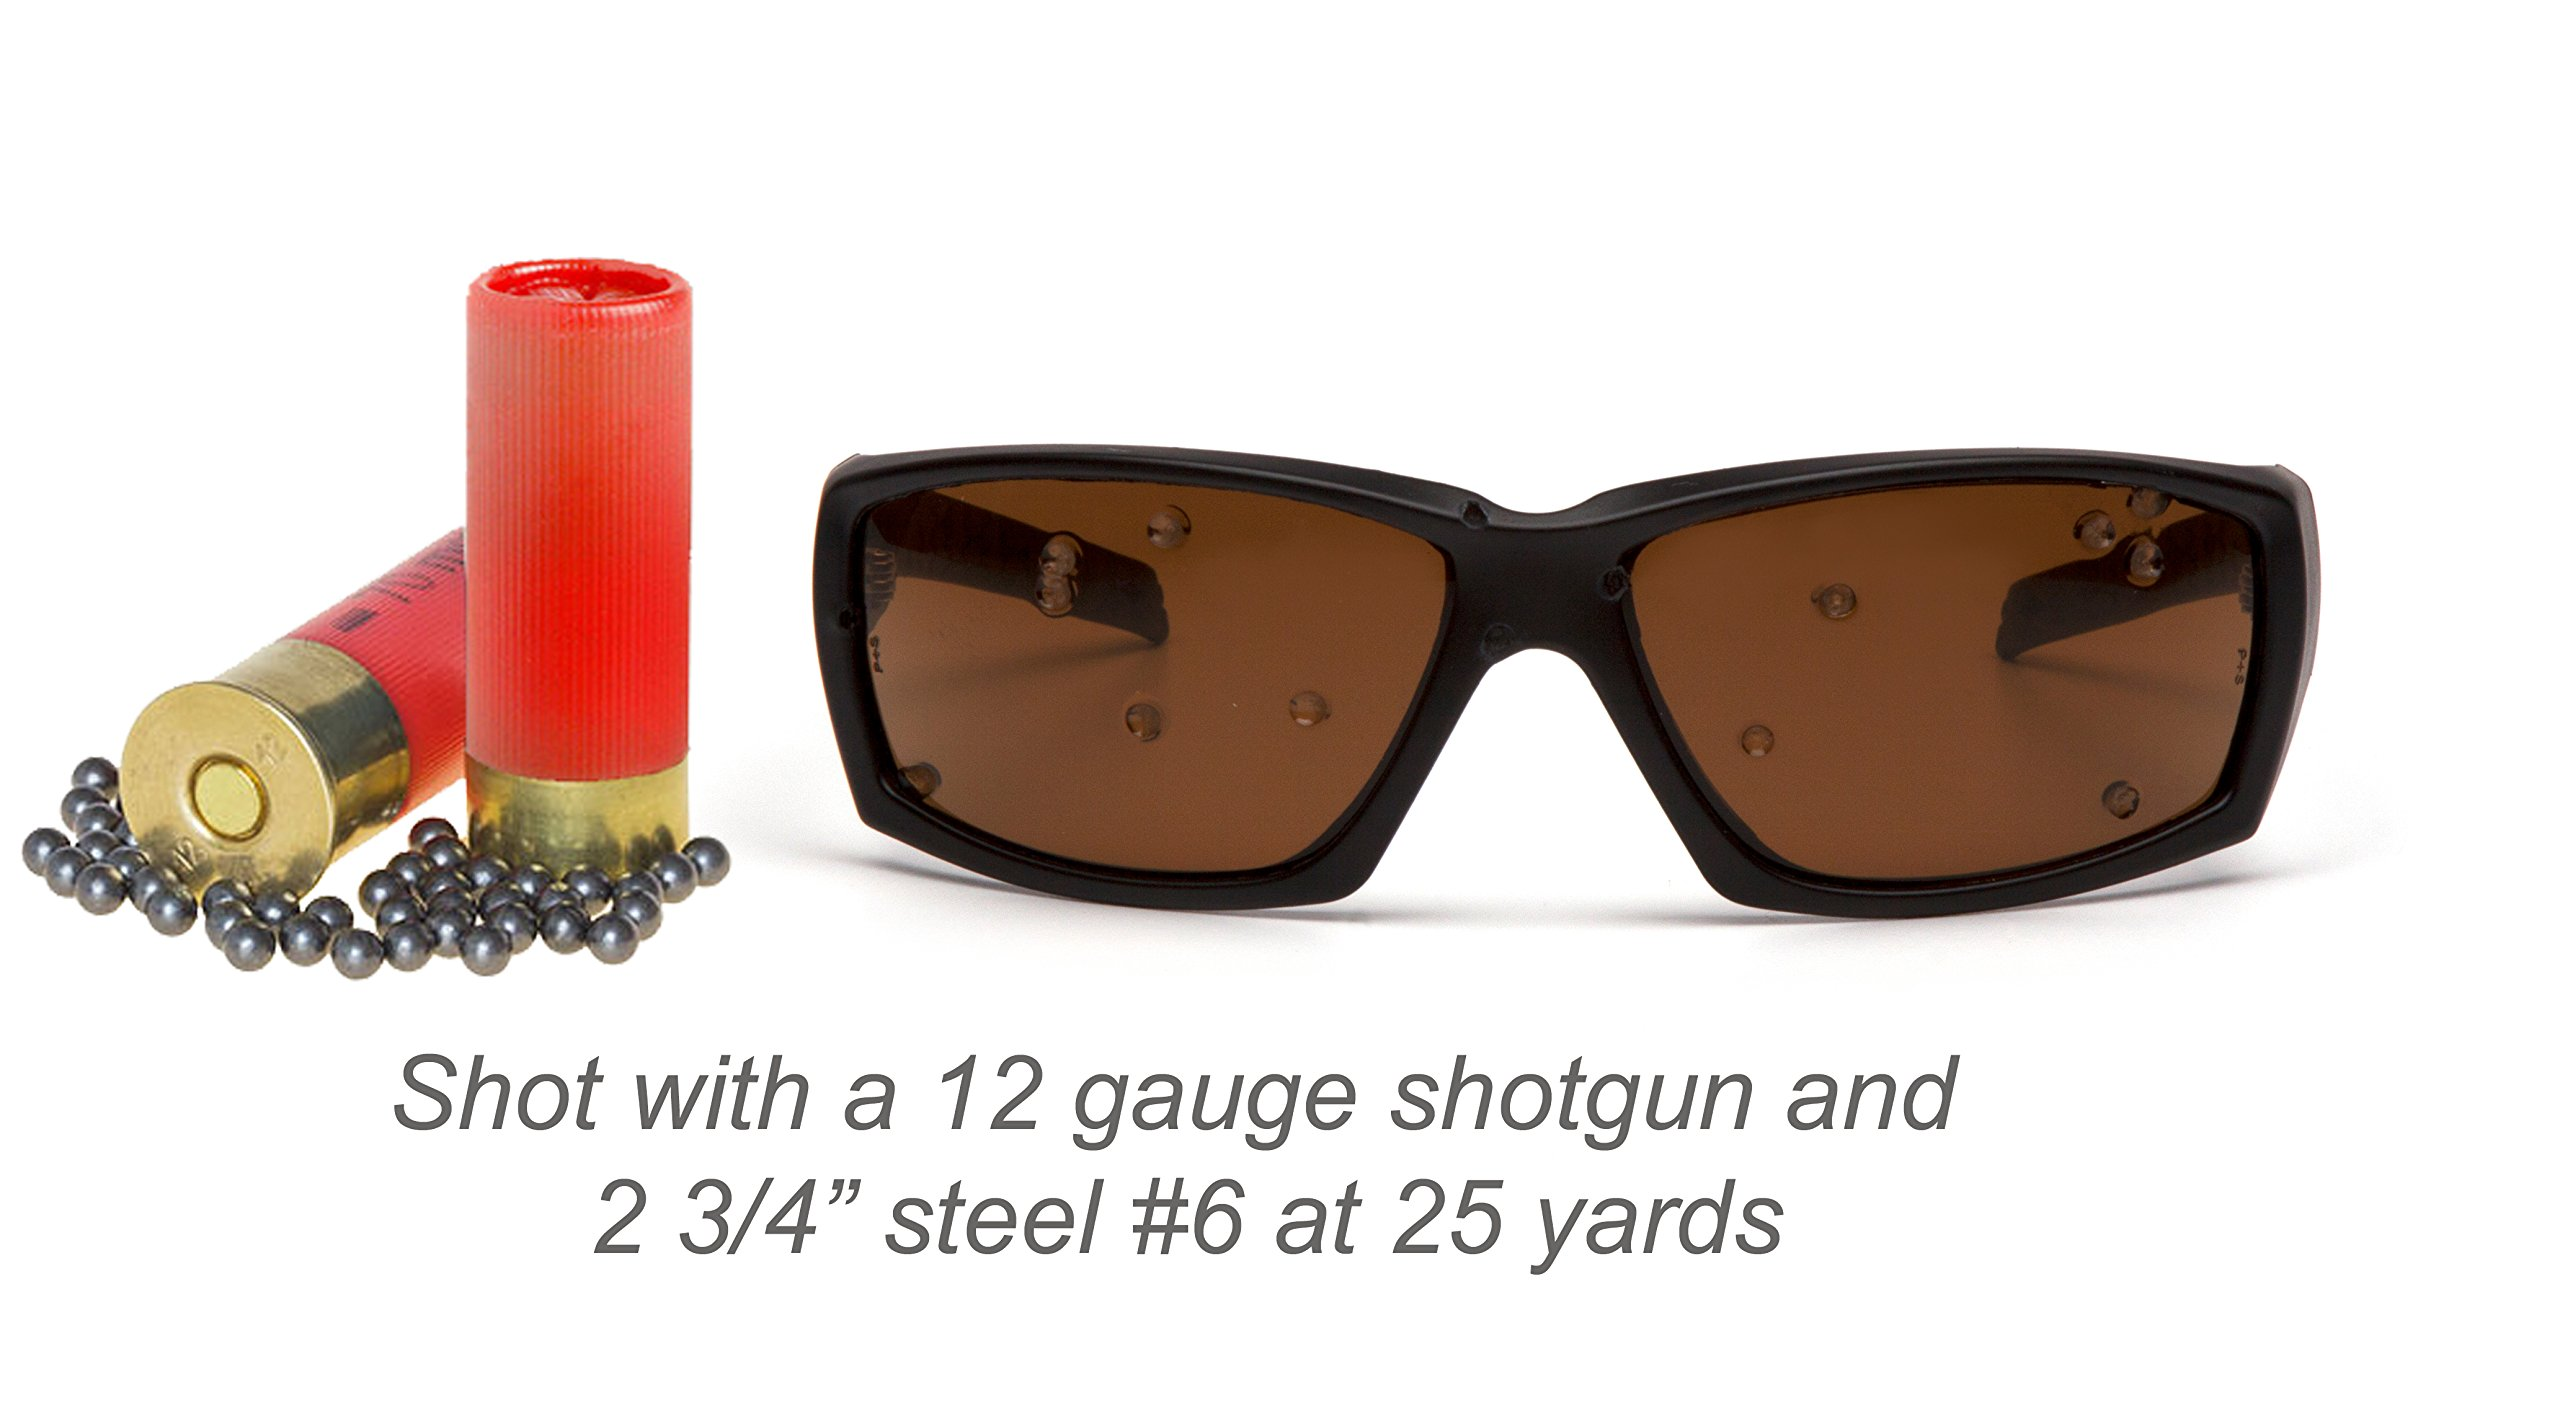 Venture Gear VGSUG722T Overwatch Tactical Sunglasses with Anti-Fog Lens, Urban Gray/Forest Gray by Venture Gear (Image #6)